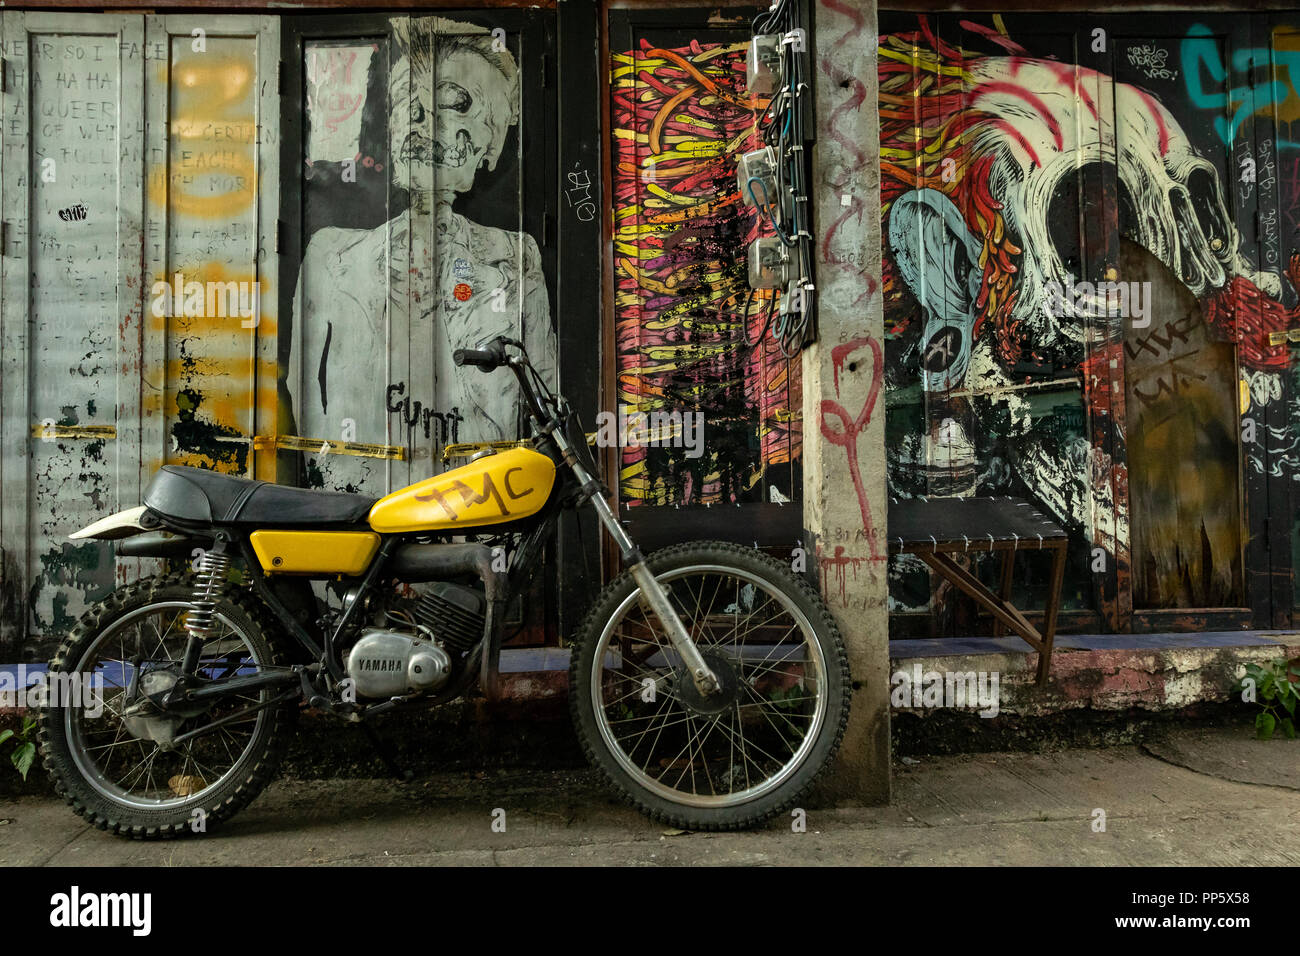 Motorbike parked with biker graffiti covered walls in Pai, Thailand - Stock Image